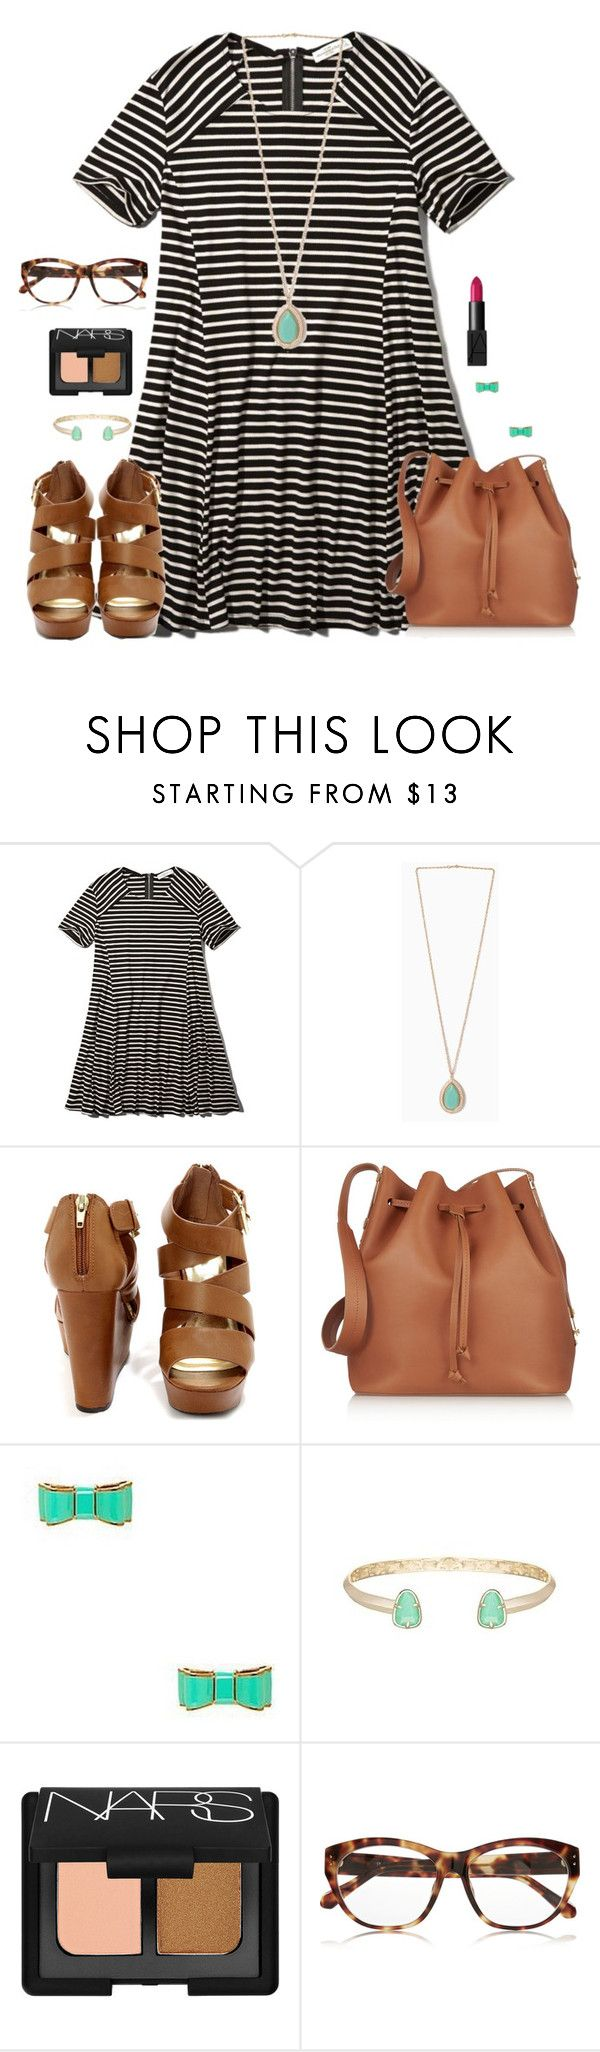 """""""""""Who are you to judge the life I life? I'm not perfect, and I don't have to be! Before you start pointing your fingers, make sure your hands are clean."""" -Bob Marley"""" by kaley-ii ❤ liked on Polyvore featuring Abercrombie & Fitch, Sophie Hulme, Kate Spade, Kendra Scott, NARS Cosmetics and Linda Farrow"""